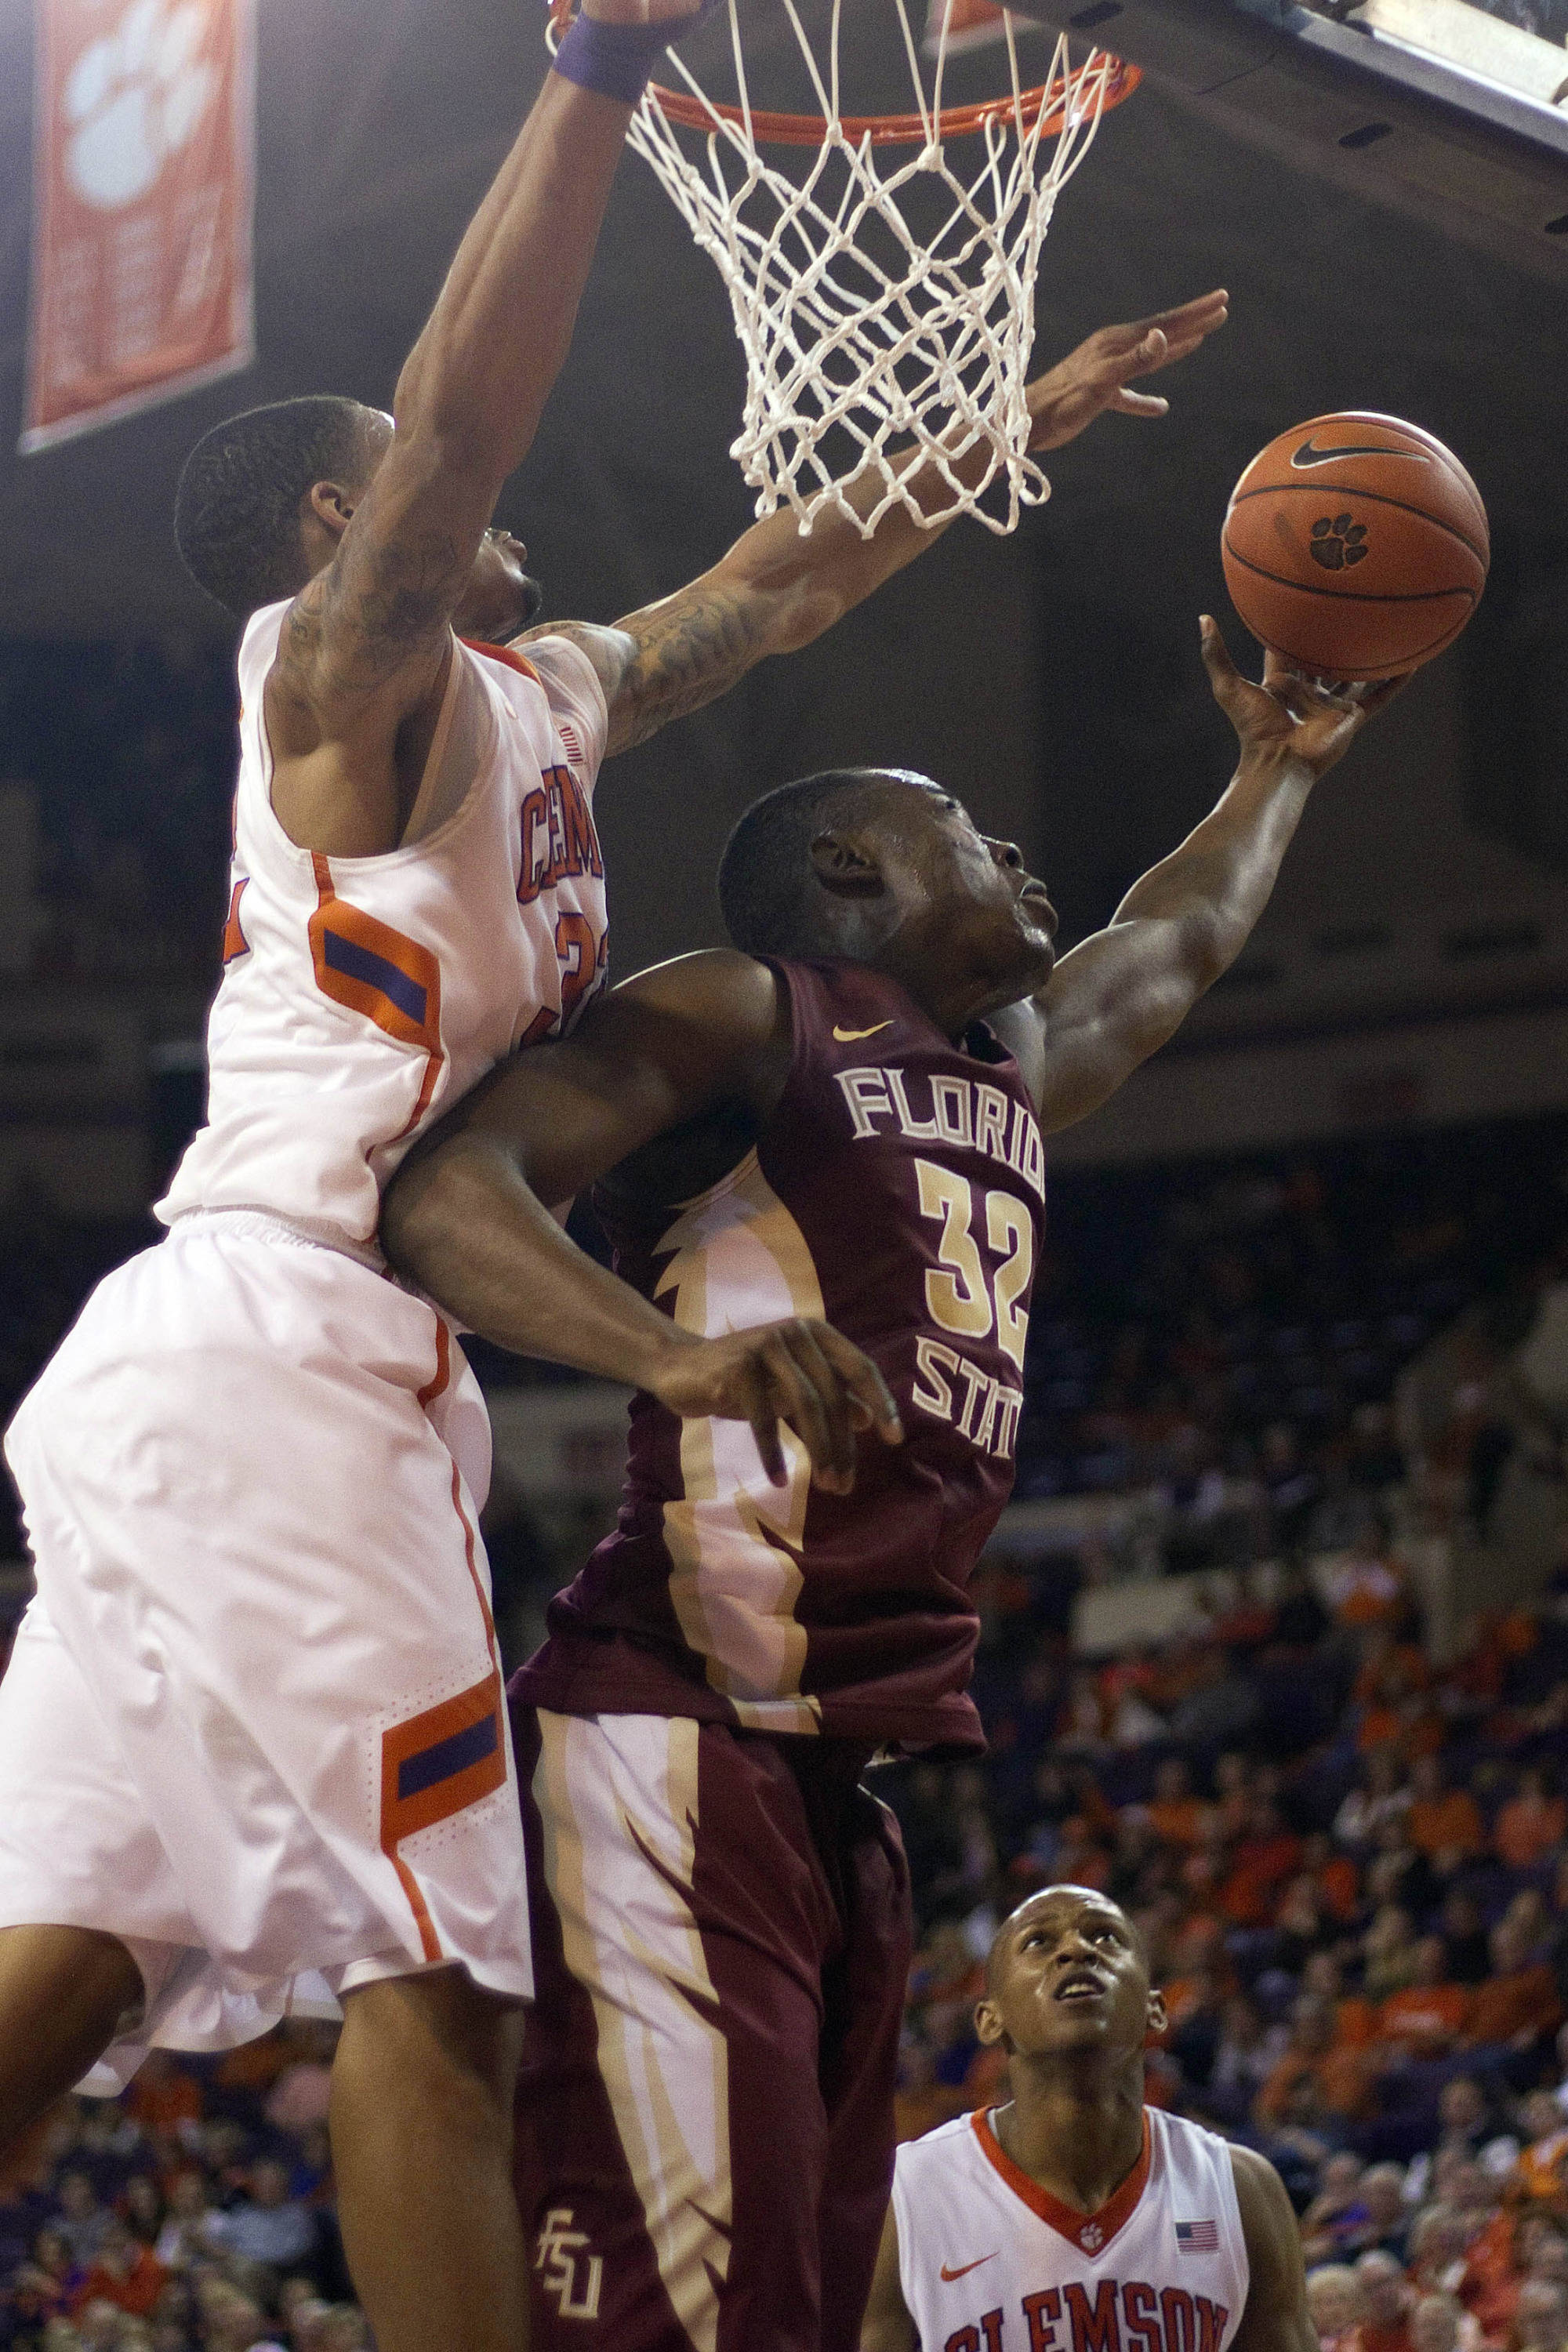 Jan 9, 2014; Clemson, SC, USA; Clemson Tigers forward K.J. McDaniels (32) blocks the shot by Florida State Seminoles guard Montay Brandon (32) during the second half at J.C. Littlejohn Coliseum. Seminoles won 56-41. Mandatory Credit: Joshua S. Kelly-USA TODAY Sports